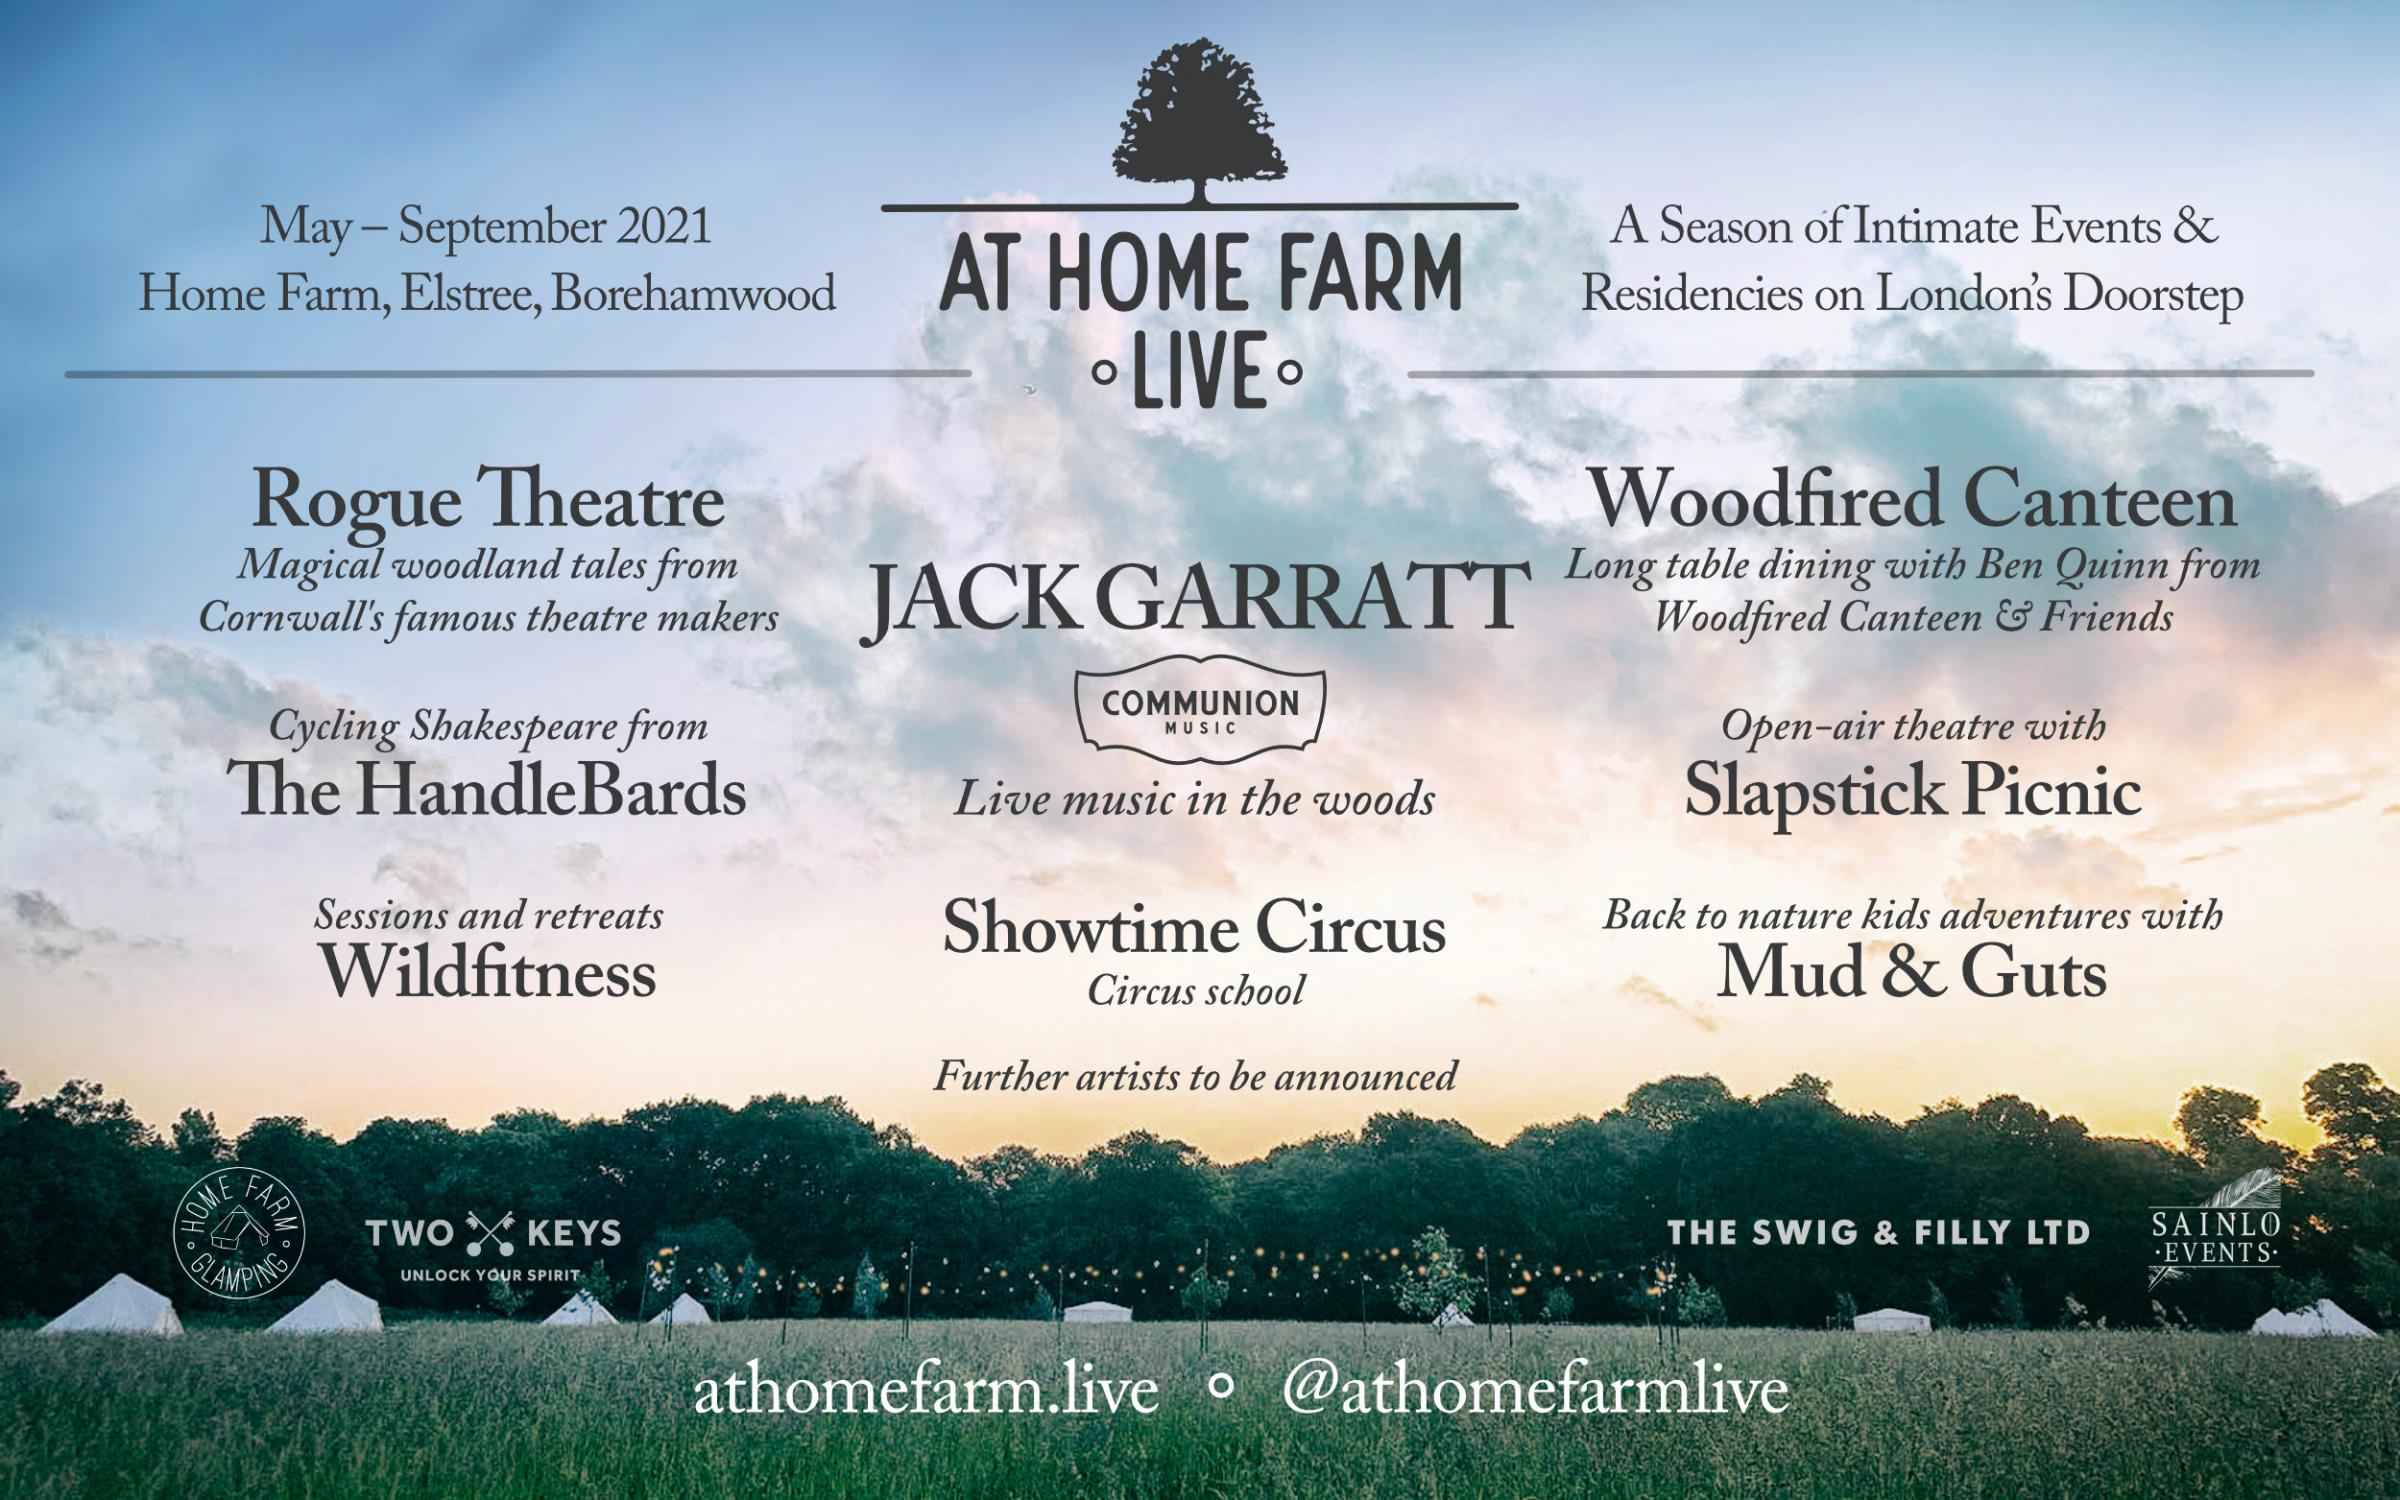 At Home Farm hosts: Communion Presents opening with Jack Garratt's return to the stage